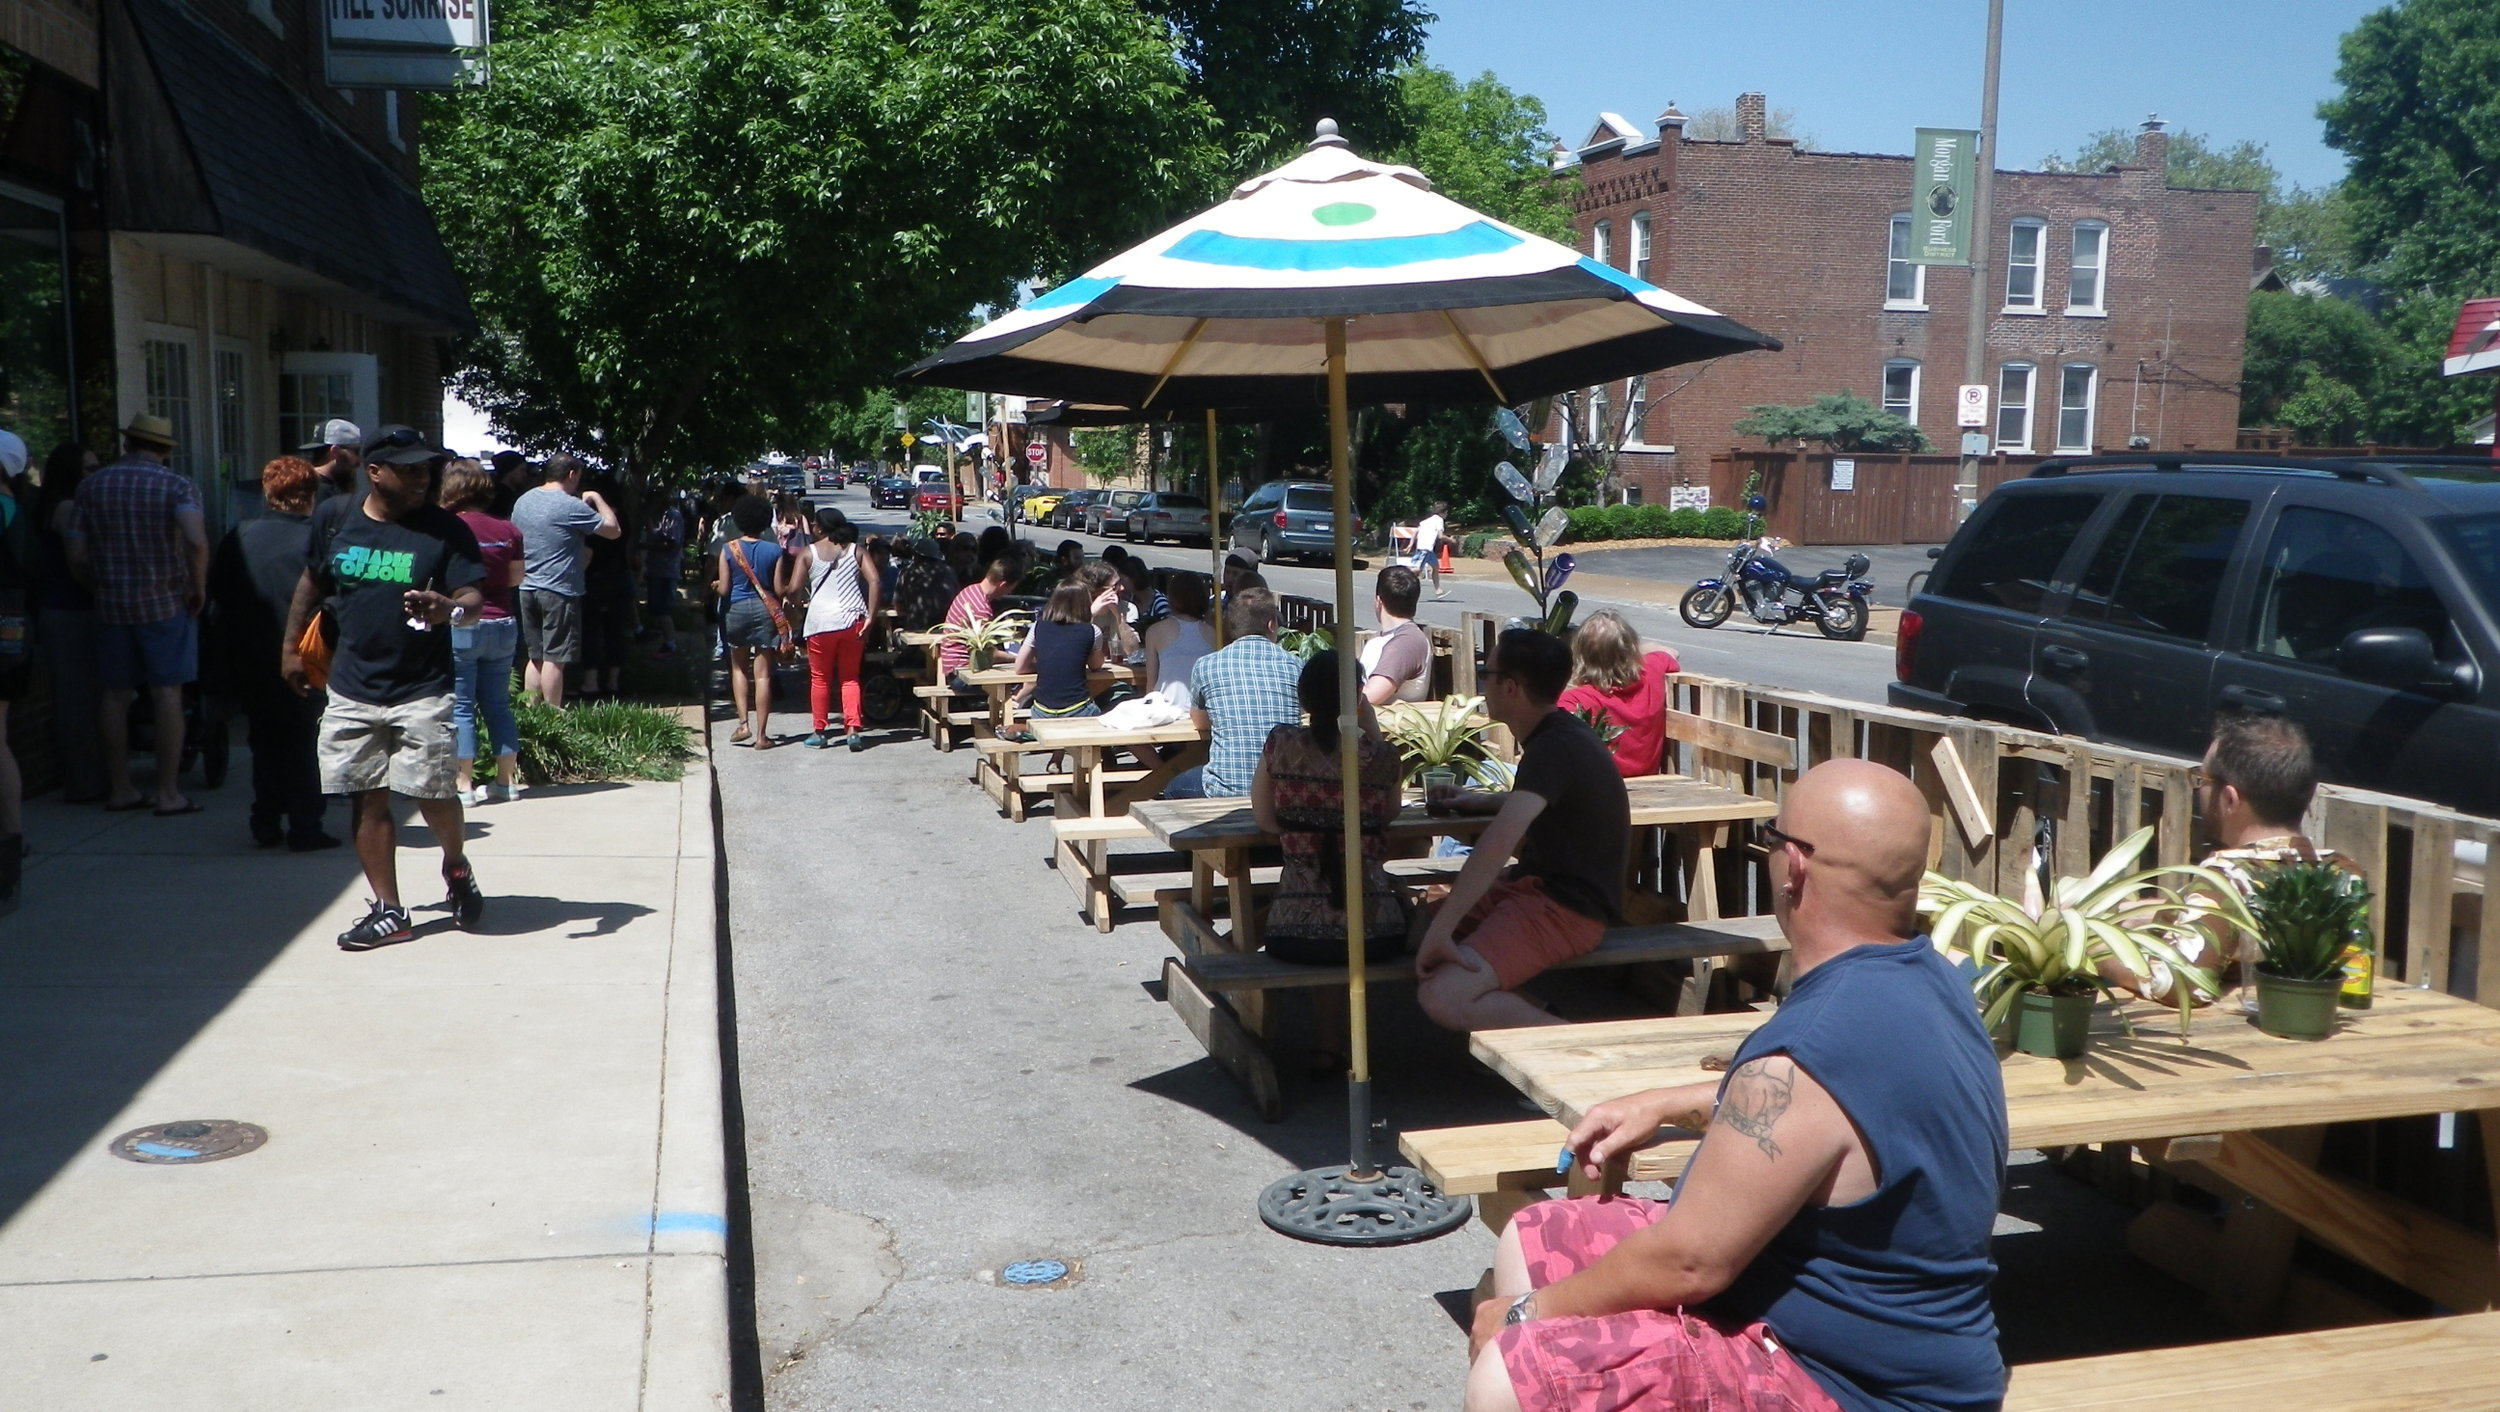 At the Better Block event, sidewalks were widened to slow traffic and provide more outdoor patio space.